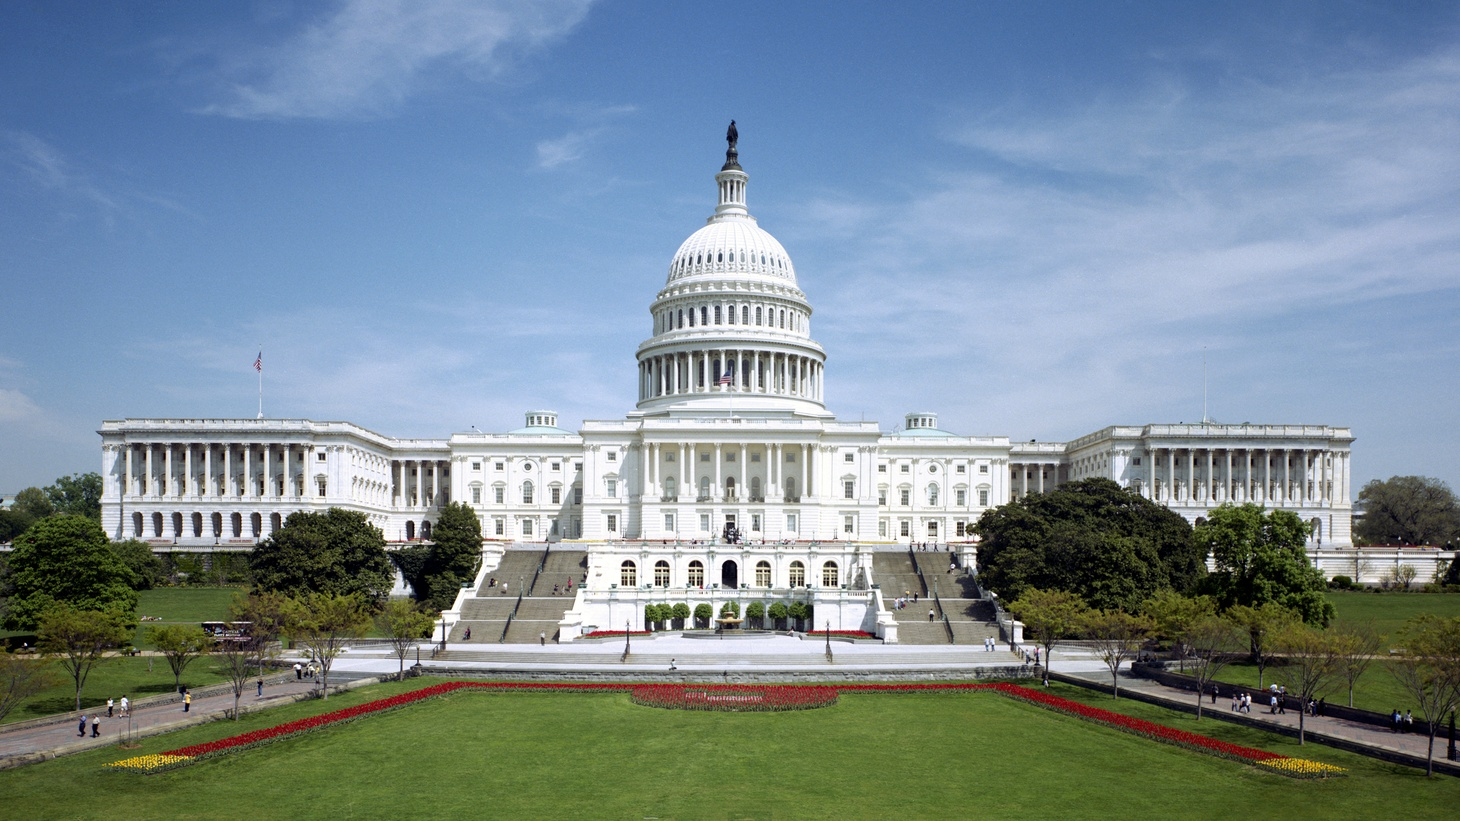 The western front of the United States Capitol. The Neoclassical style building is in Washington, D.C., on Capitol Hill, at the east end of the National Mall. The Capitol was designated a National Historic Landmark in 1960.